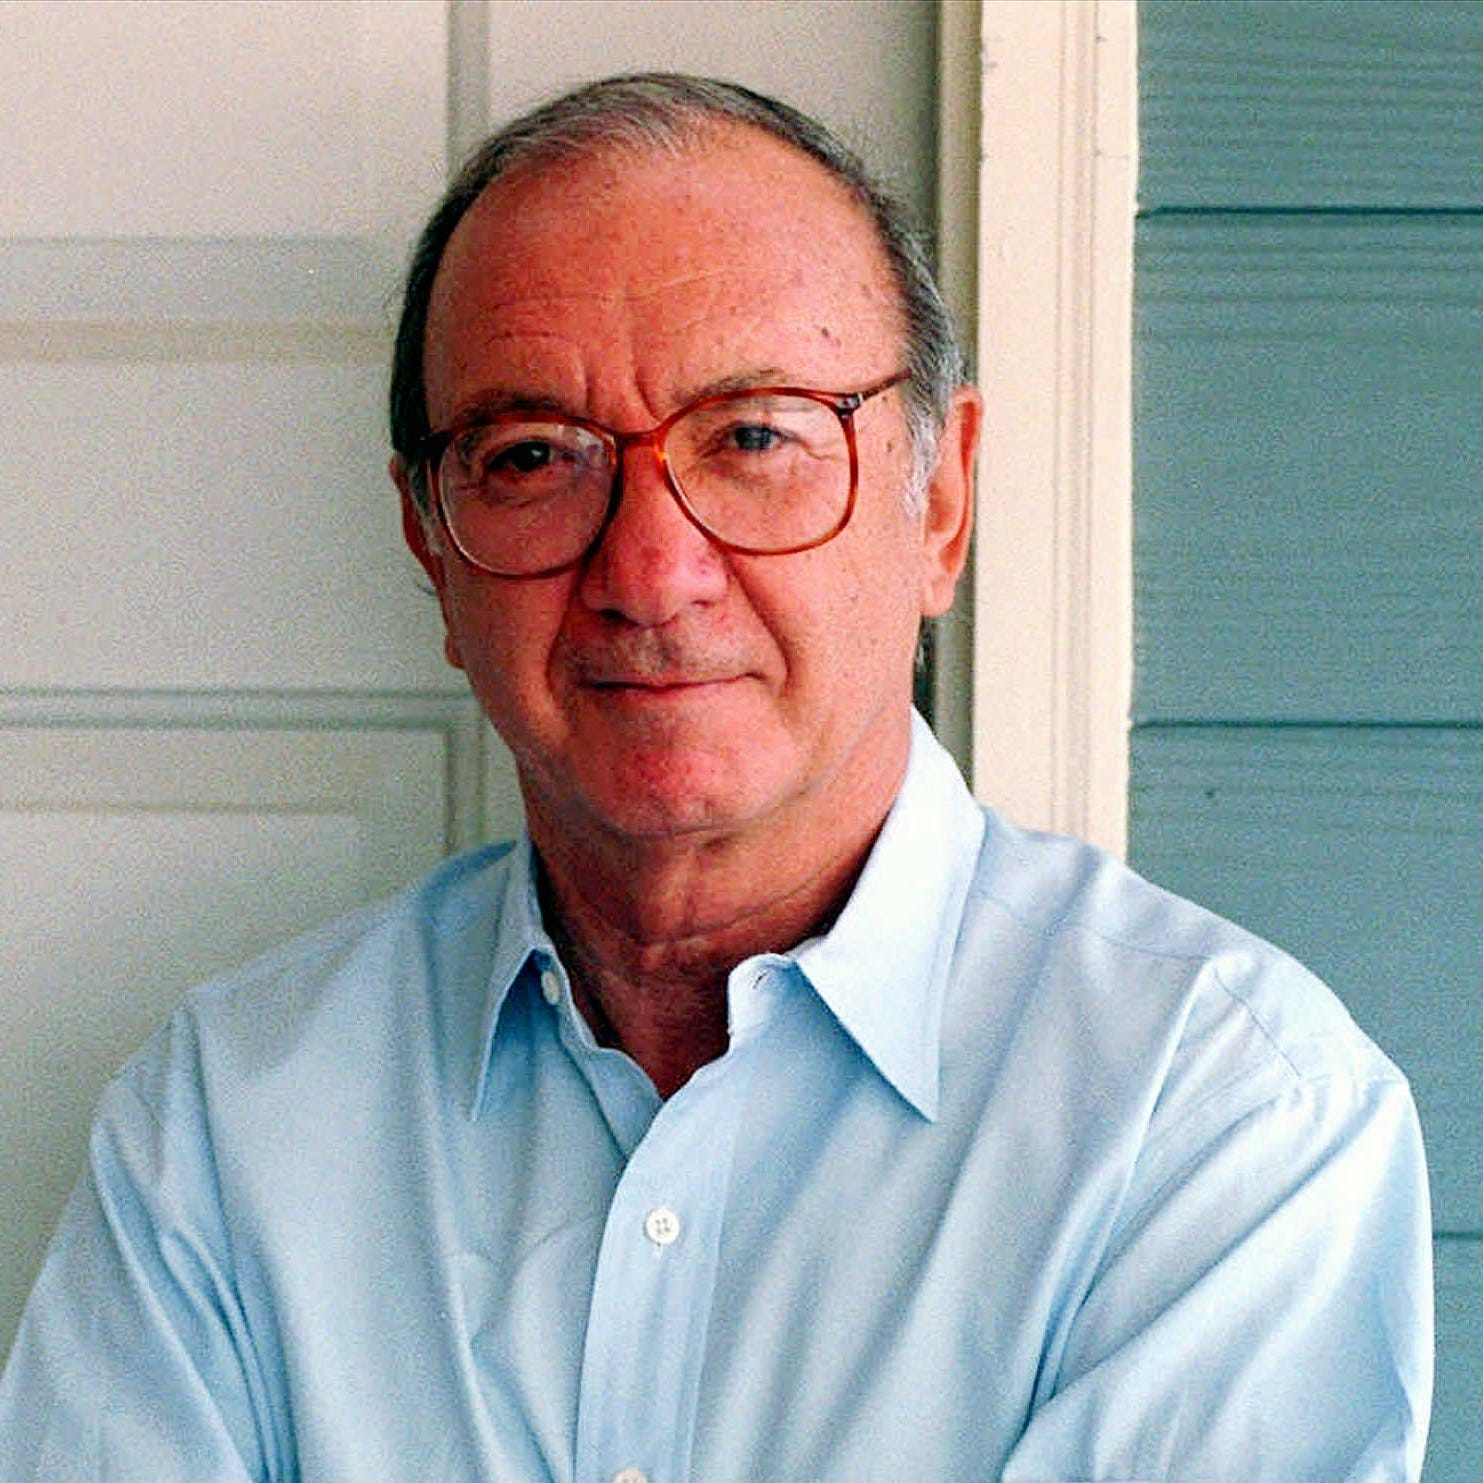 America's playwright Neil Simon, who wrote 'The Odd Couple' and 'Sweet Charity,' has died